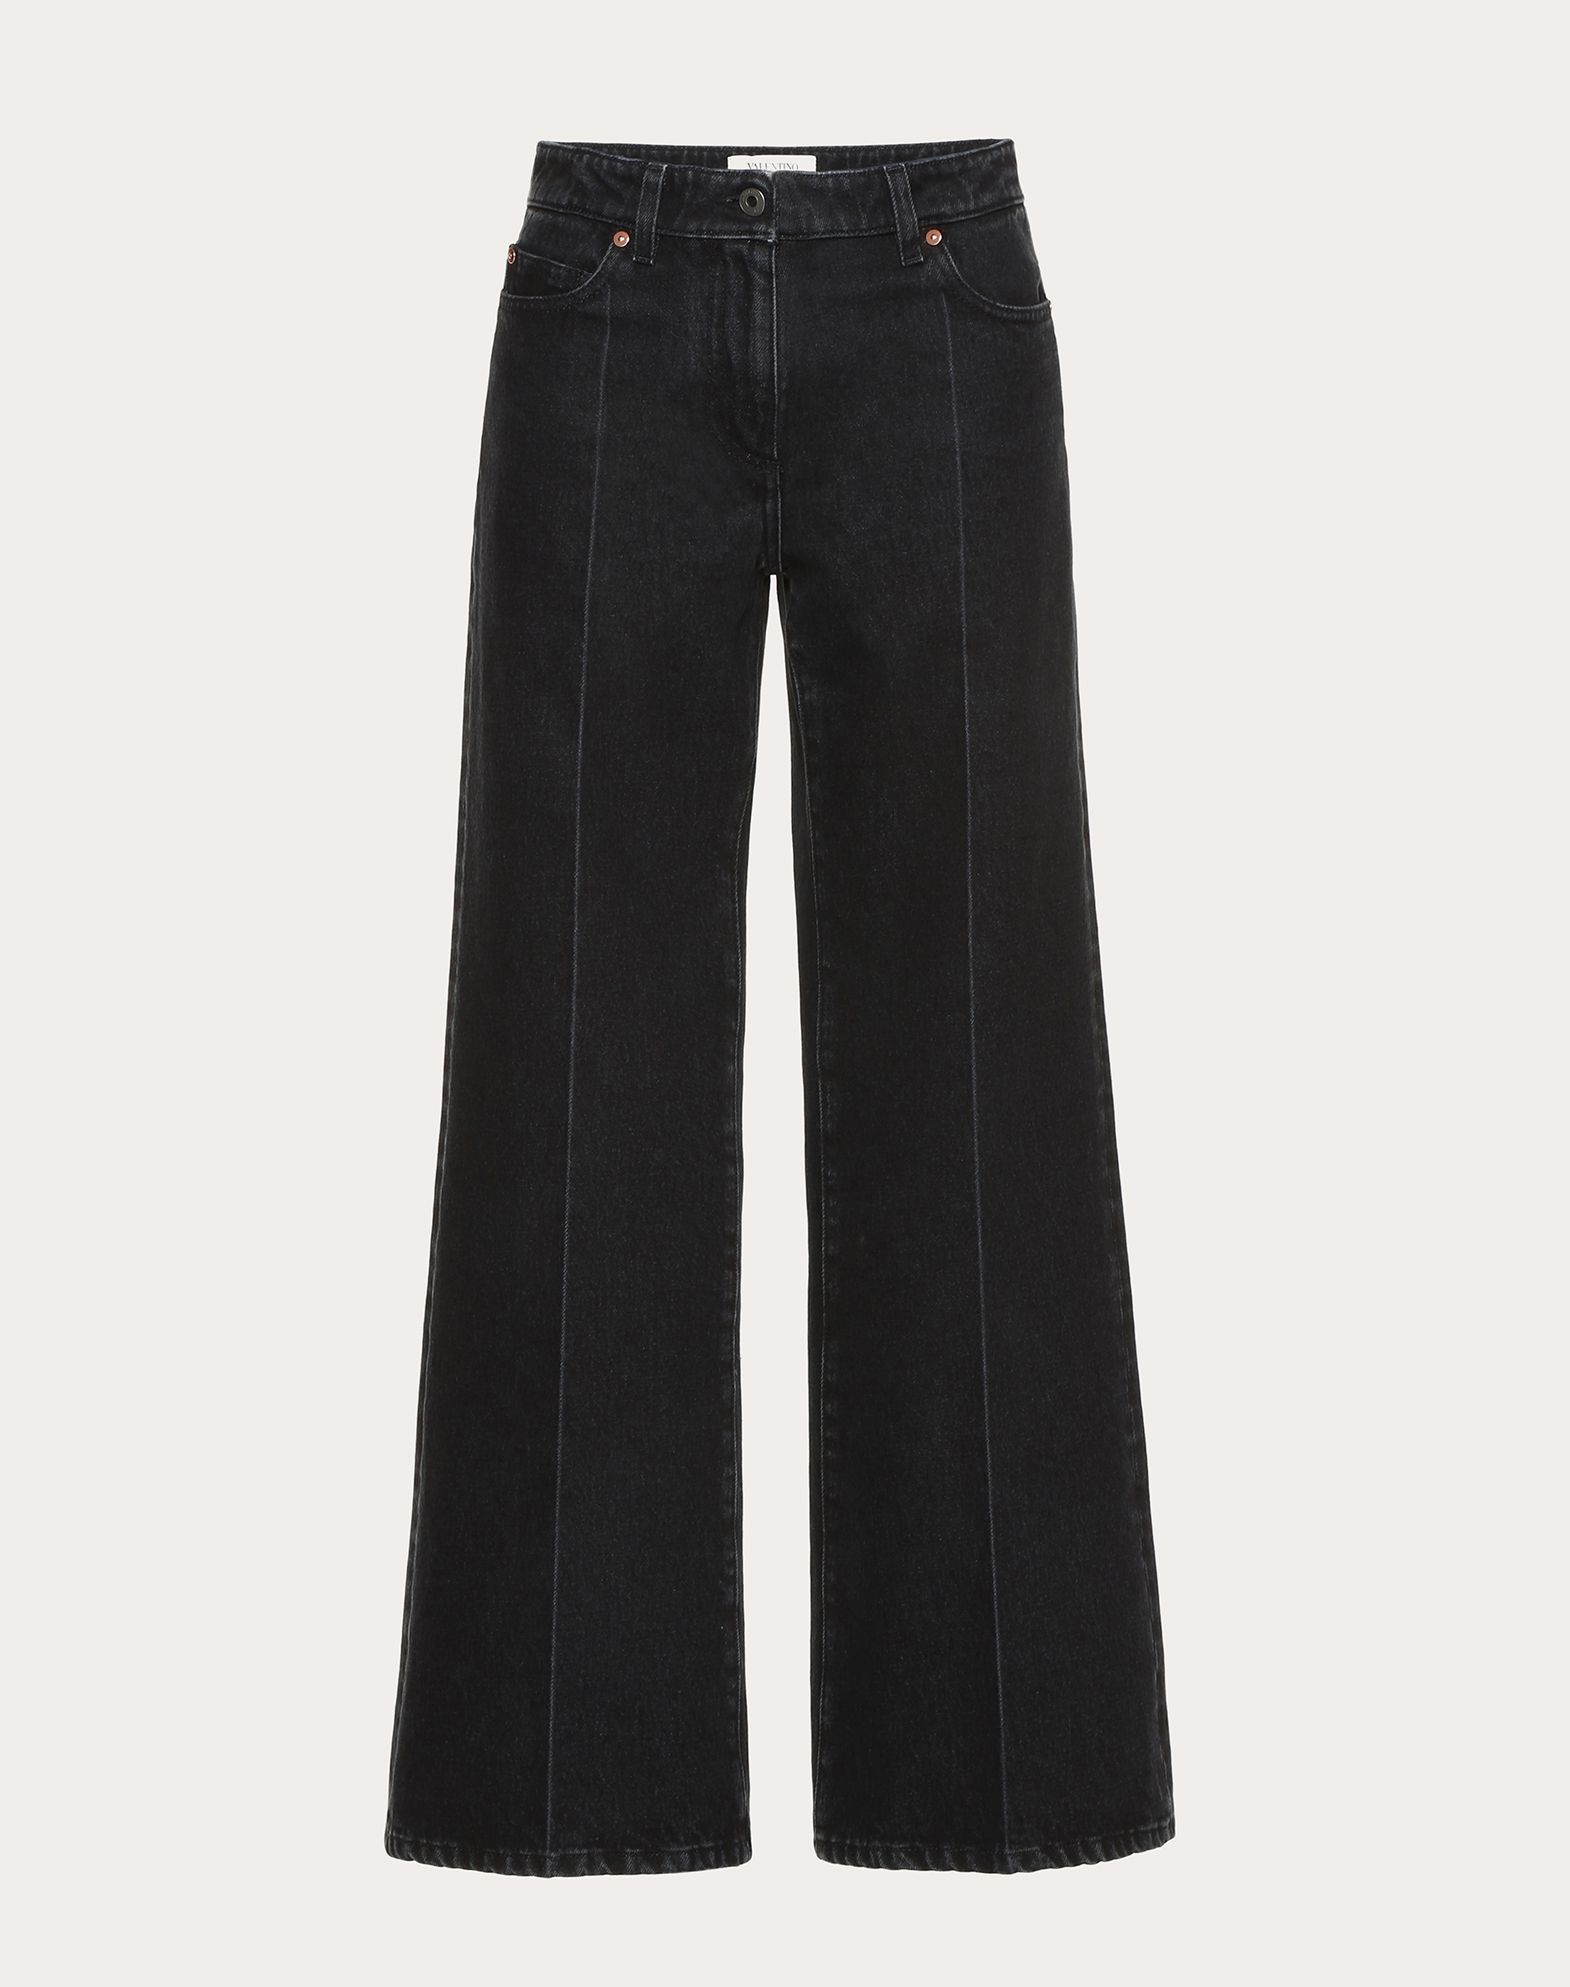 Deconstructed VLOGO Black Jeans